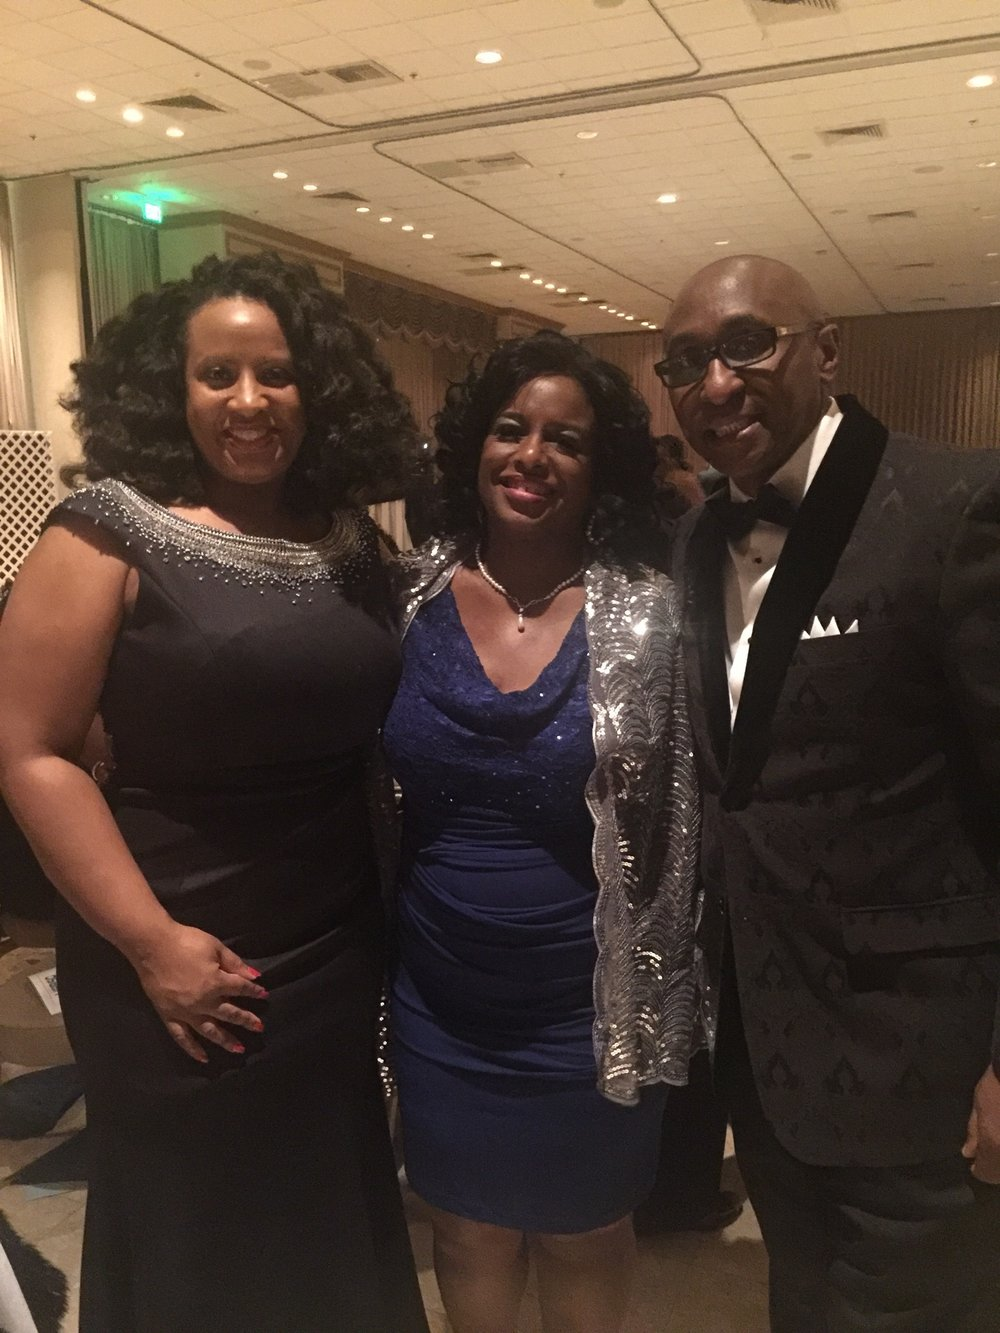 (Left to right) Director of Communications, Tonette Delk, President-Elect Honorable Dr. Doris Sartor, and CEO Cedric Lancaster at the Region XI BIG Winter Gala - December, 2016